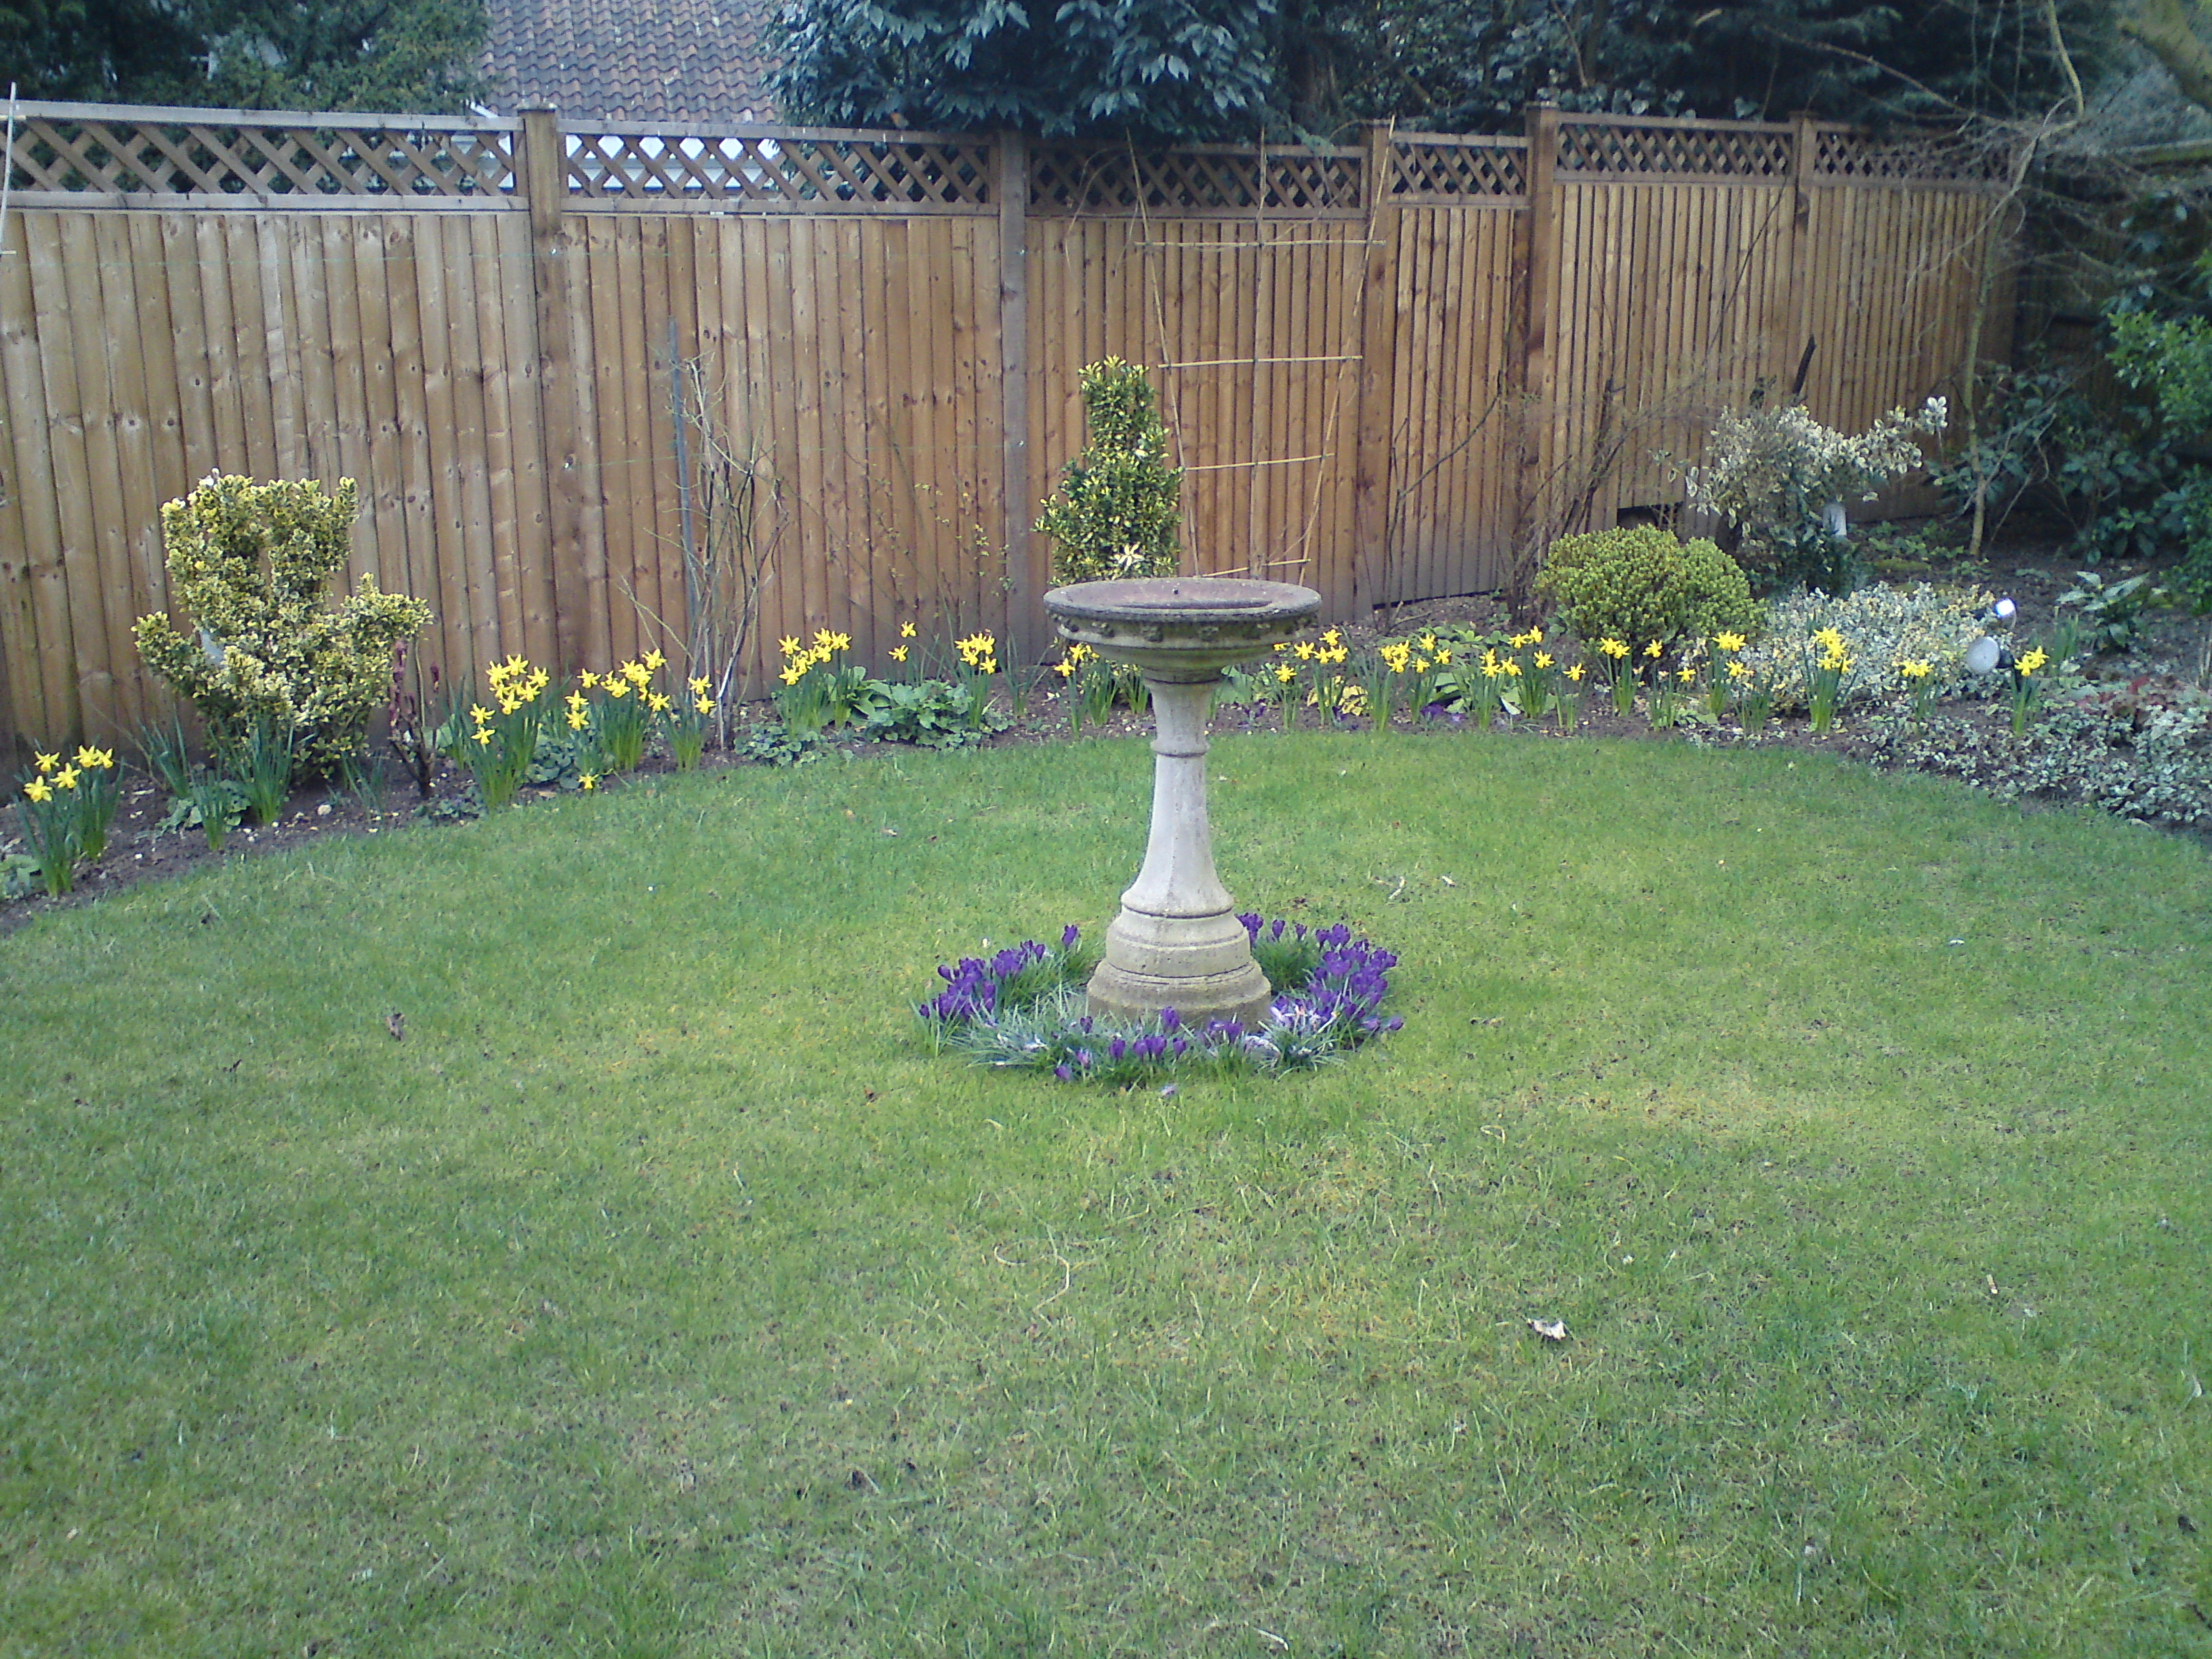 Lawn care total and professional by jhg for Professional garden maintenance